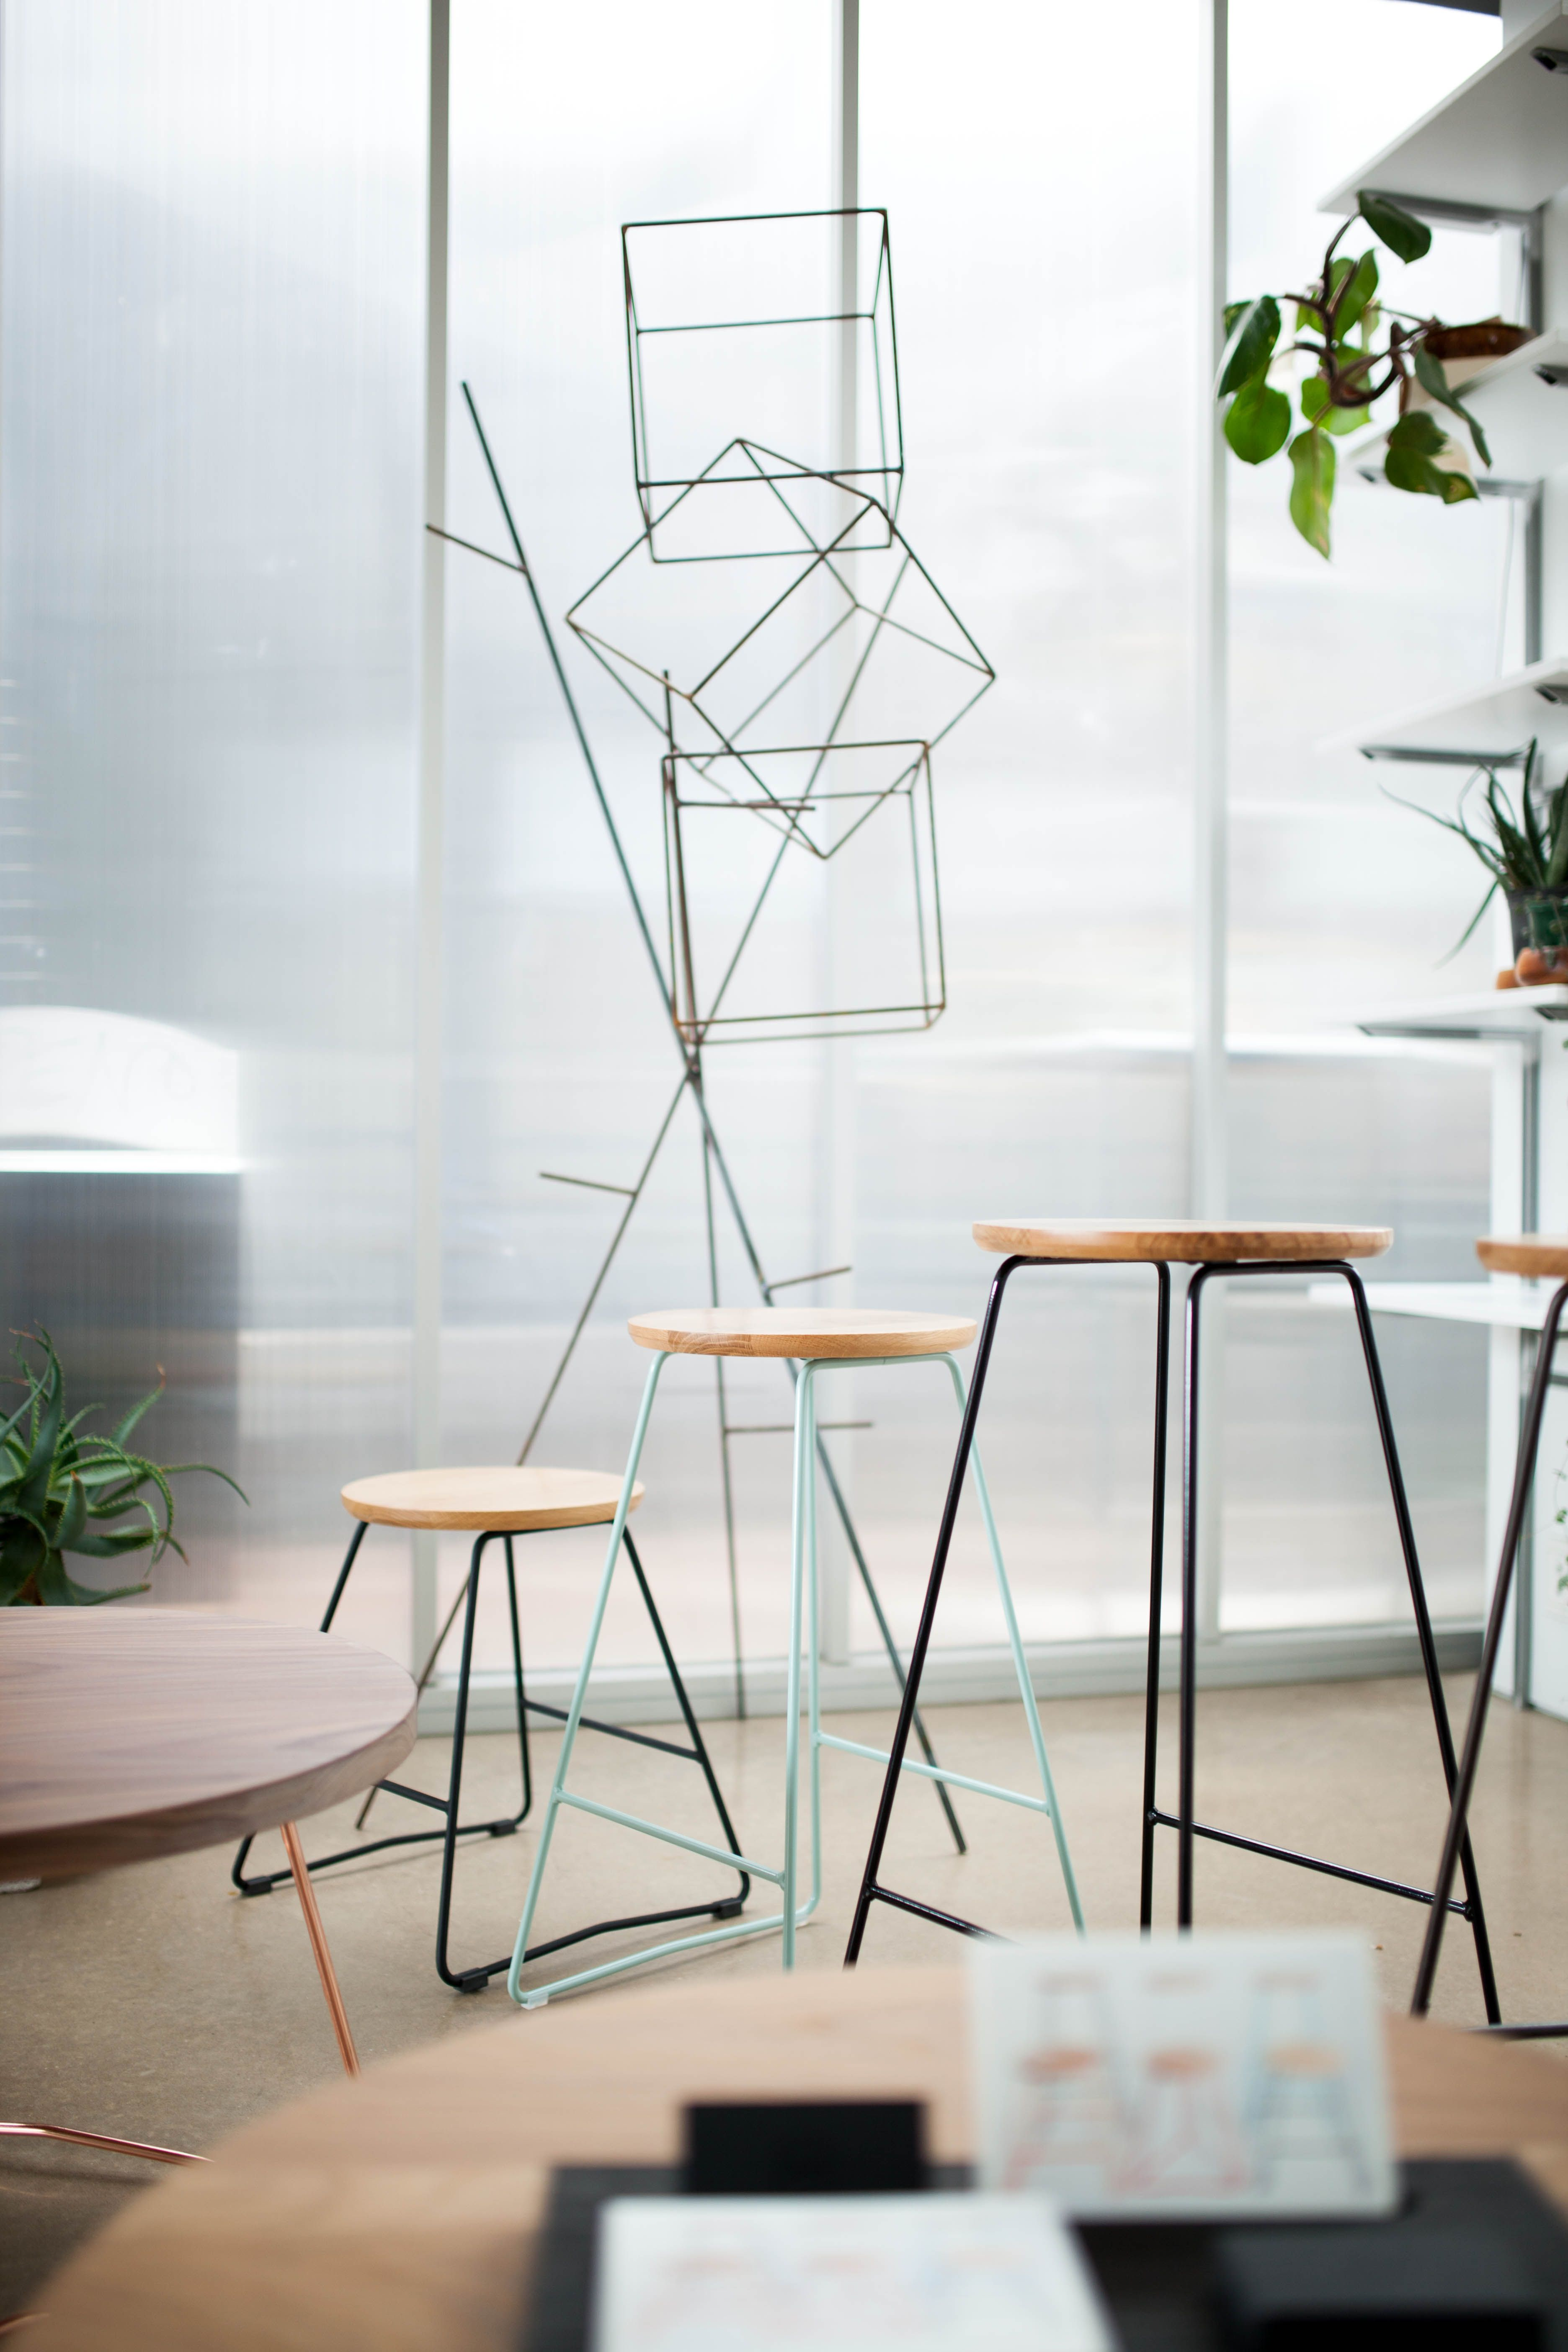 HUNT studio in Adelaide featuring HS stool range | Furniture | Pinterest